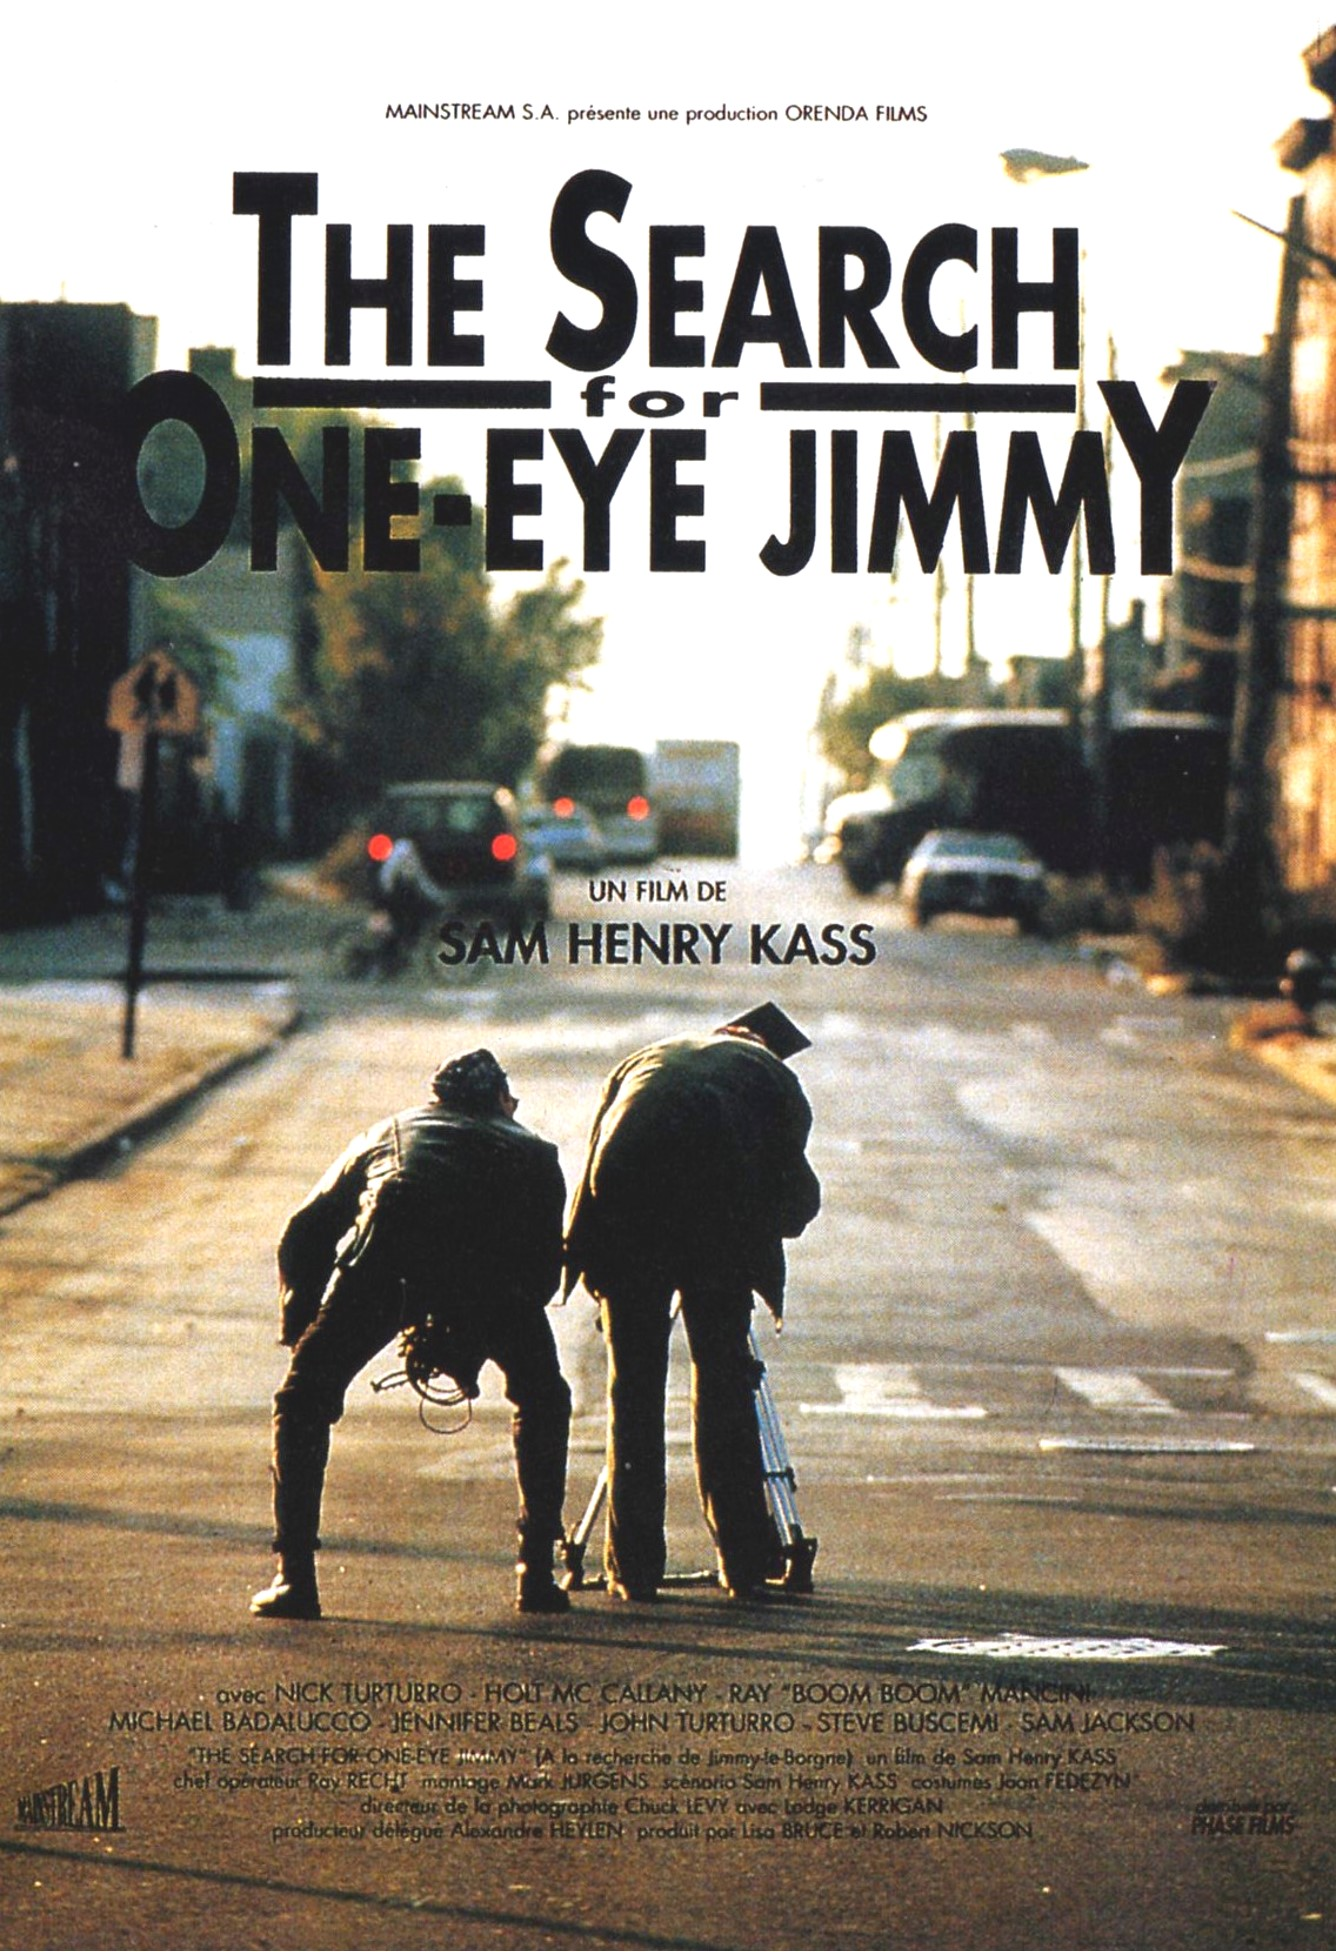 The Search for One-eye Jimmy kapak